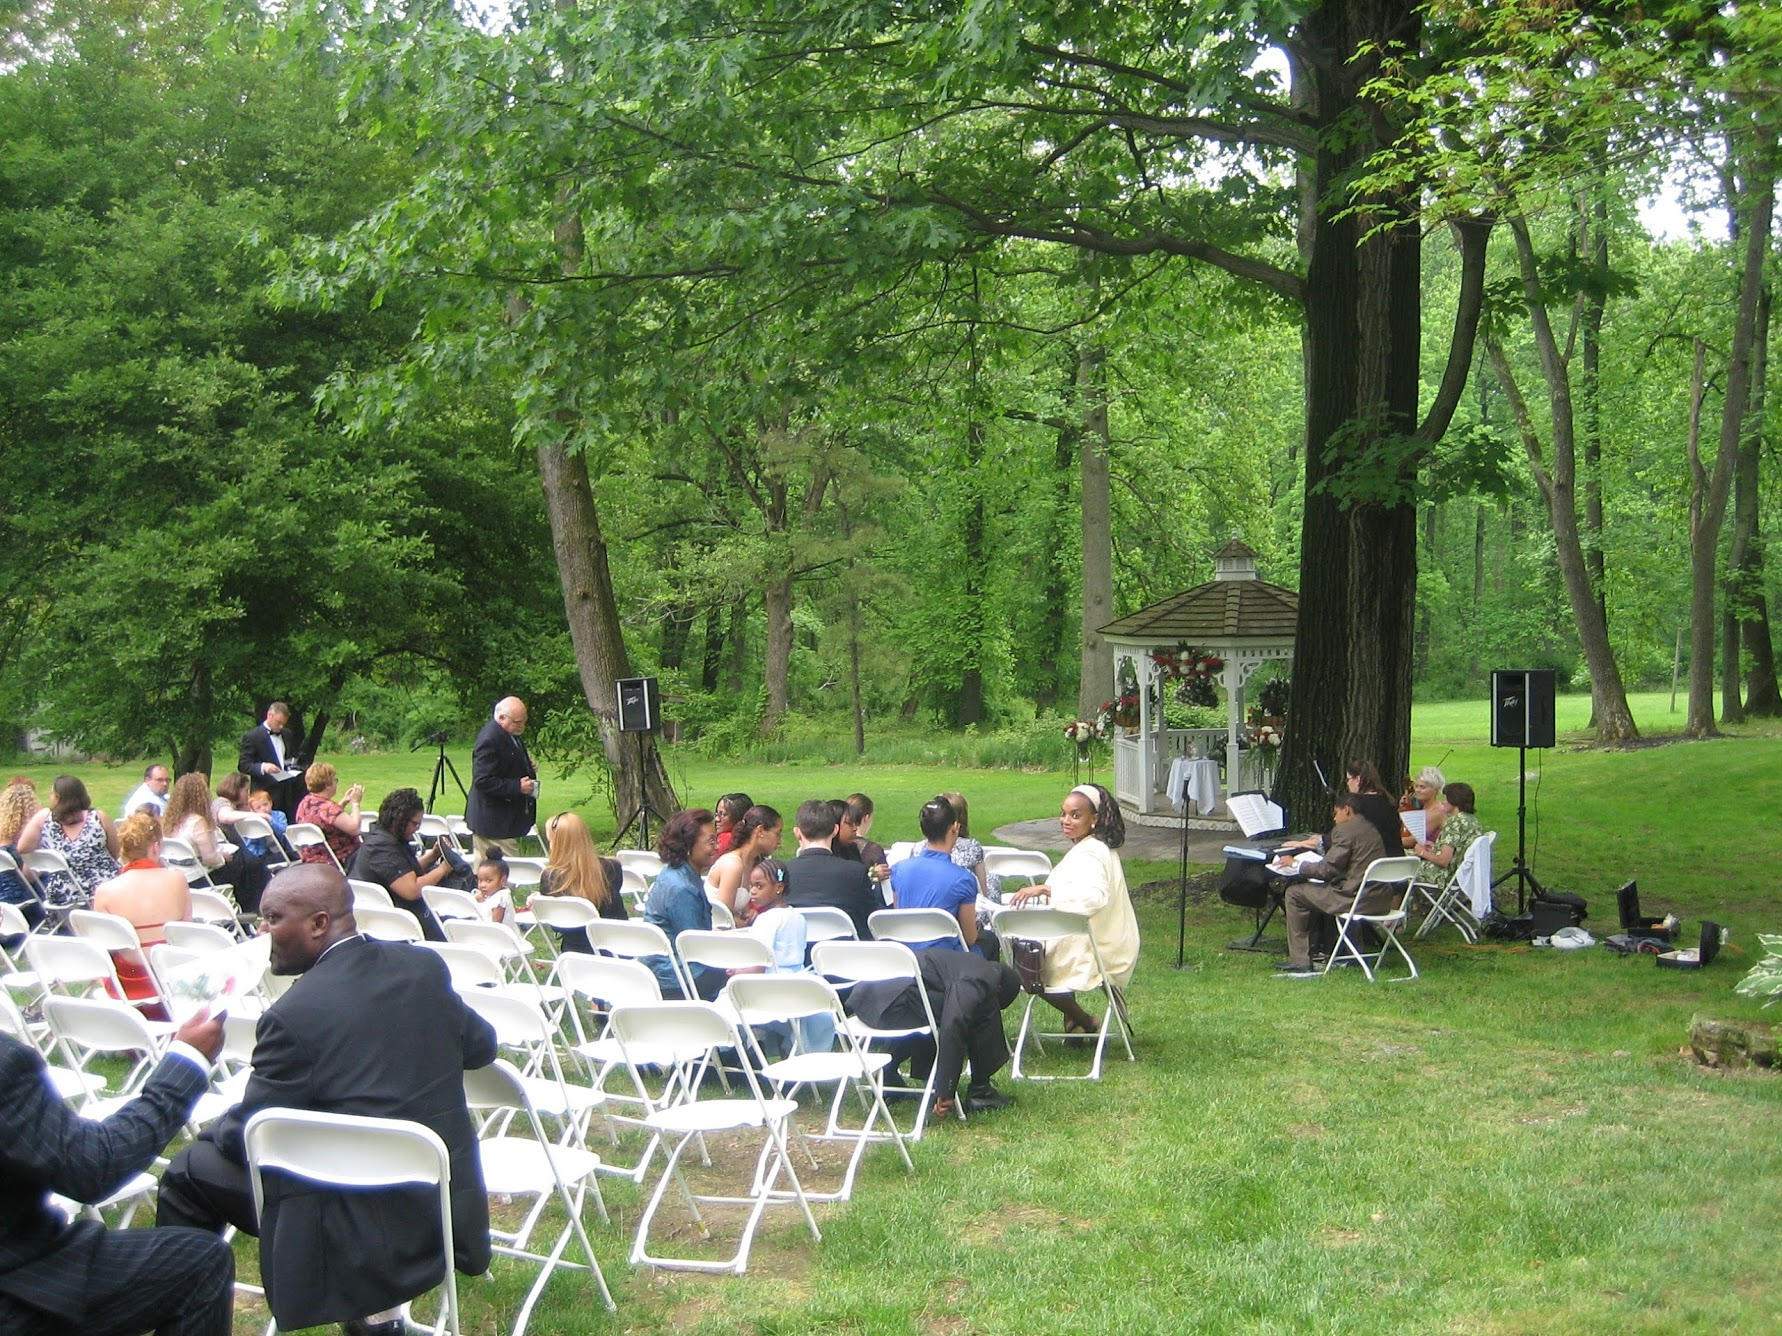 Seating area for wedding